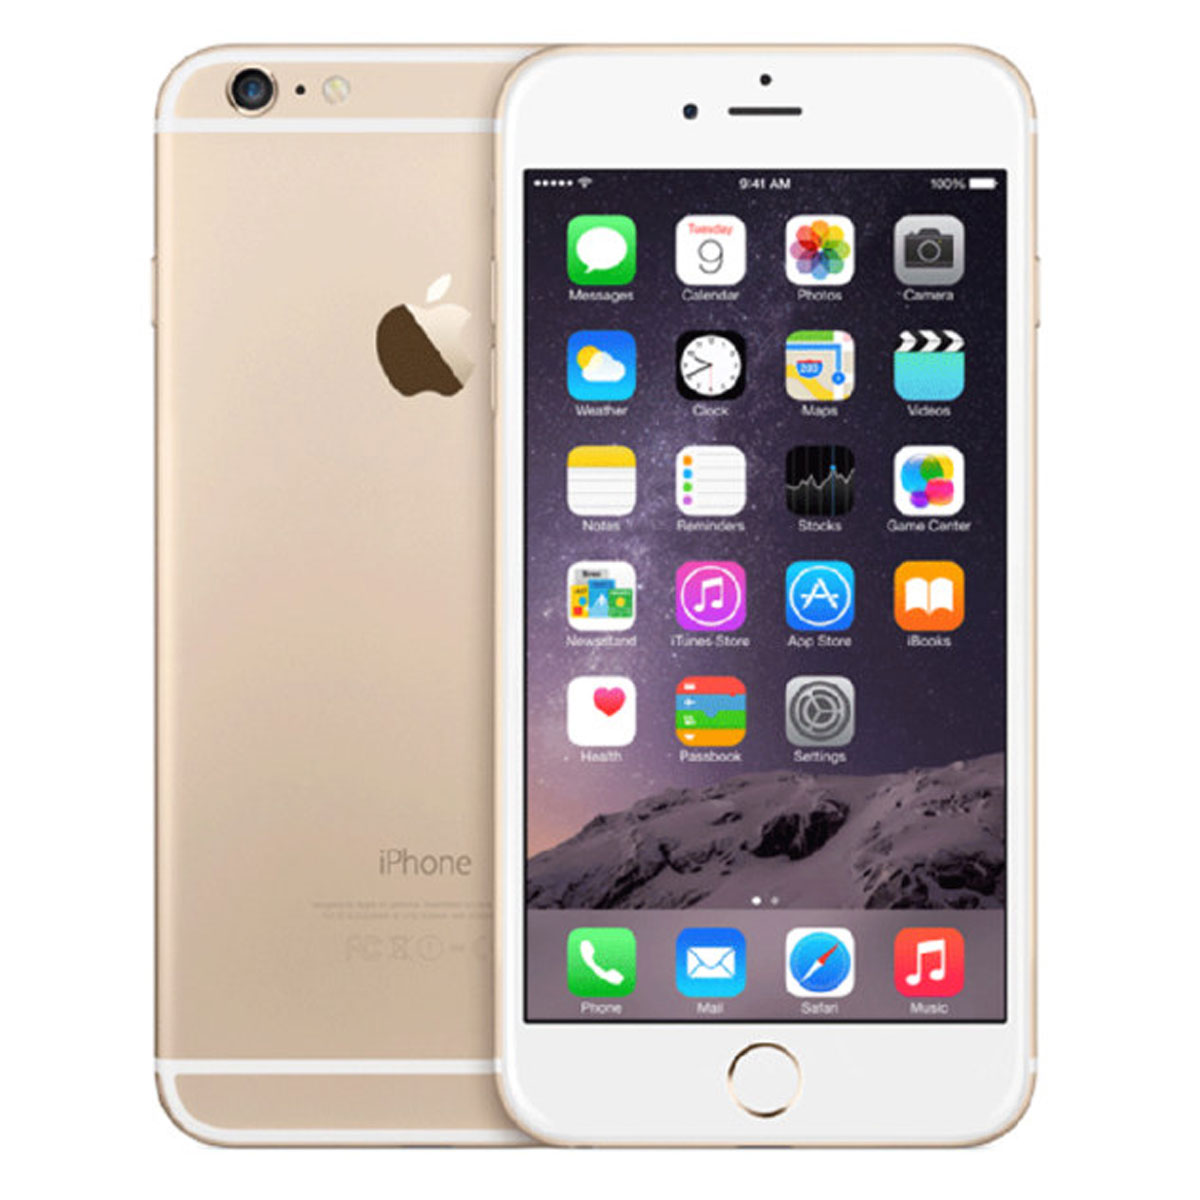 Apple Iphone 6 Plus Price In Pakistan 2020 Priceoye